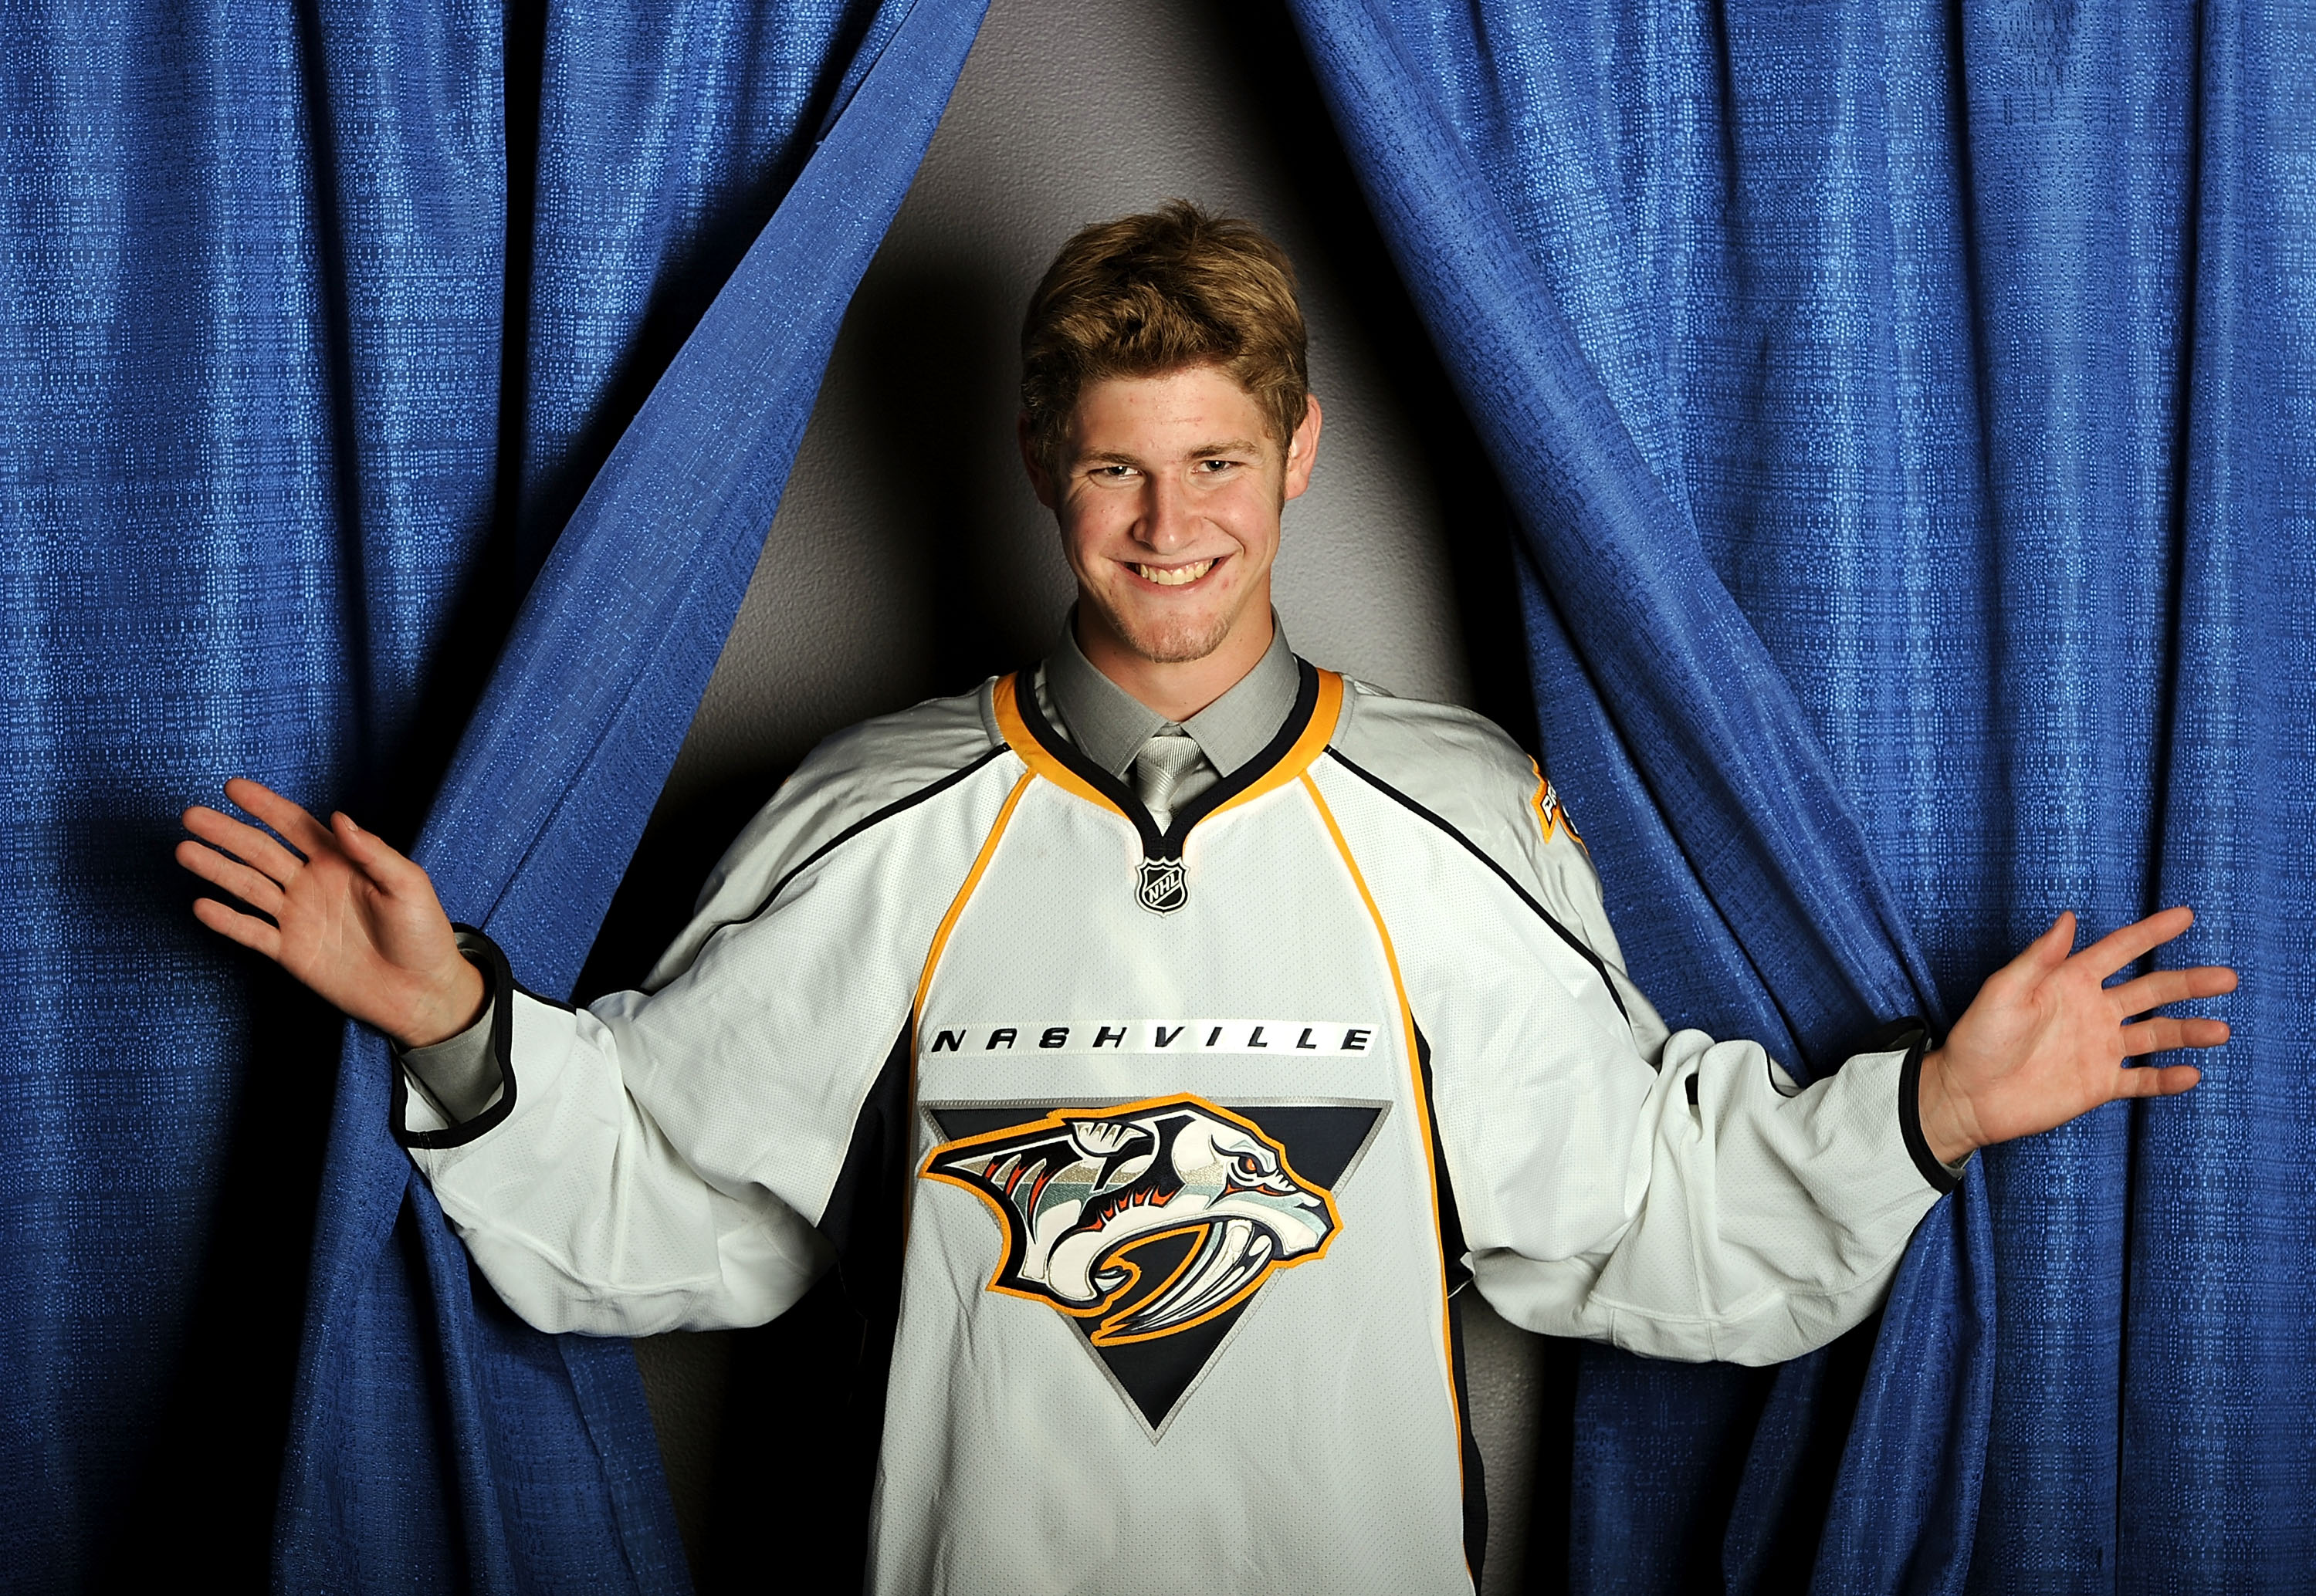 LOS ANGELES, CA - JUNE 25:  Austin Watson, drafted 18th by the Nashville Predators, poses for a portrait during the 2010 NHL Entry Draft at Staples Center on June 25, 2010 in Los Angeles, California.  (Photo by Harry How/Getty Images)